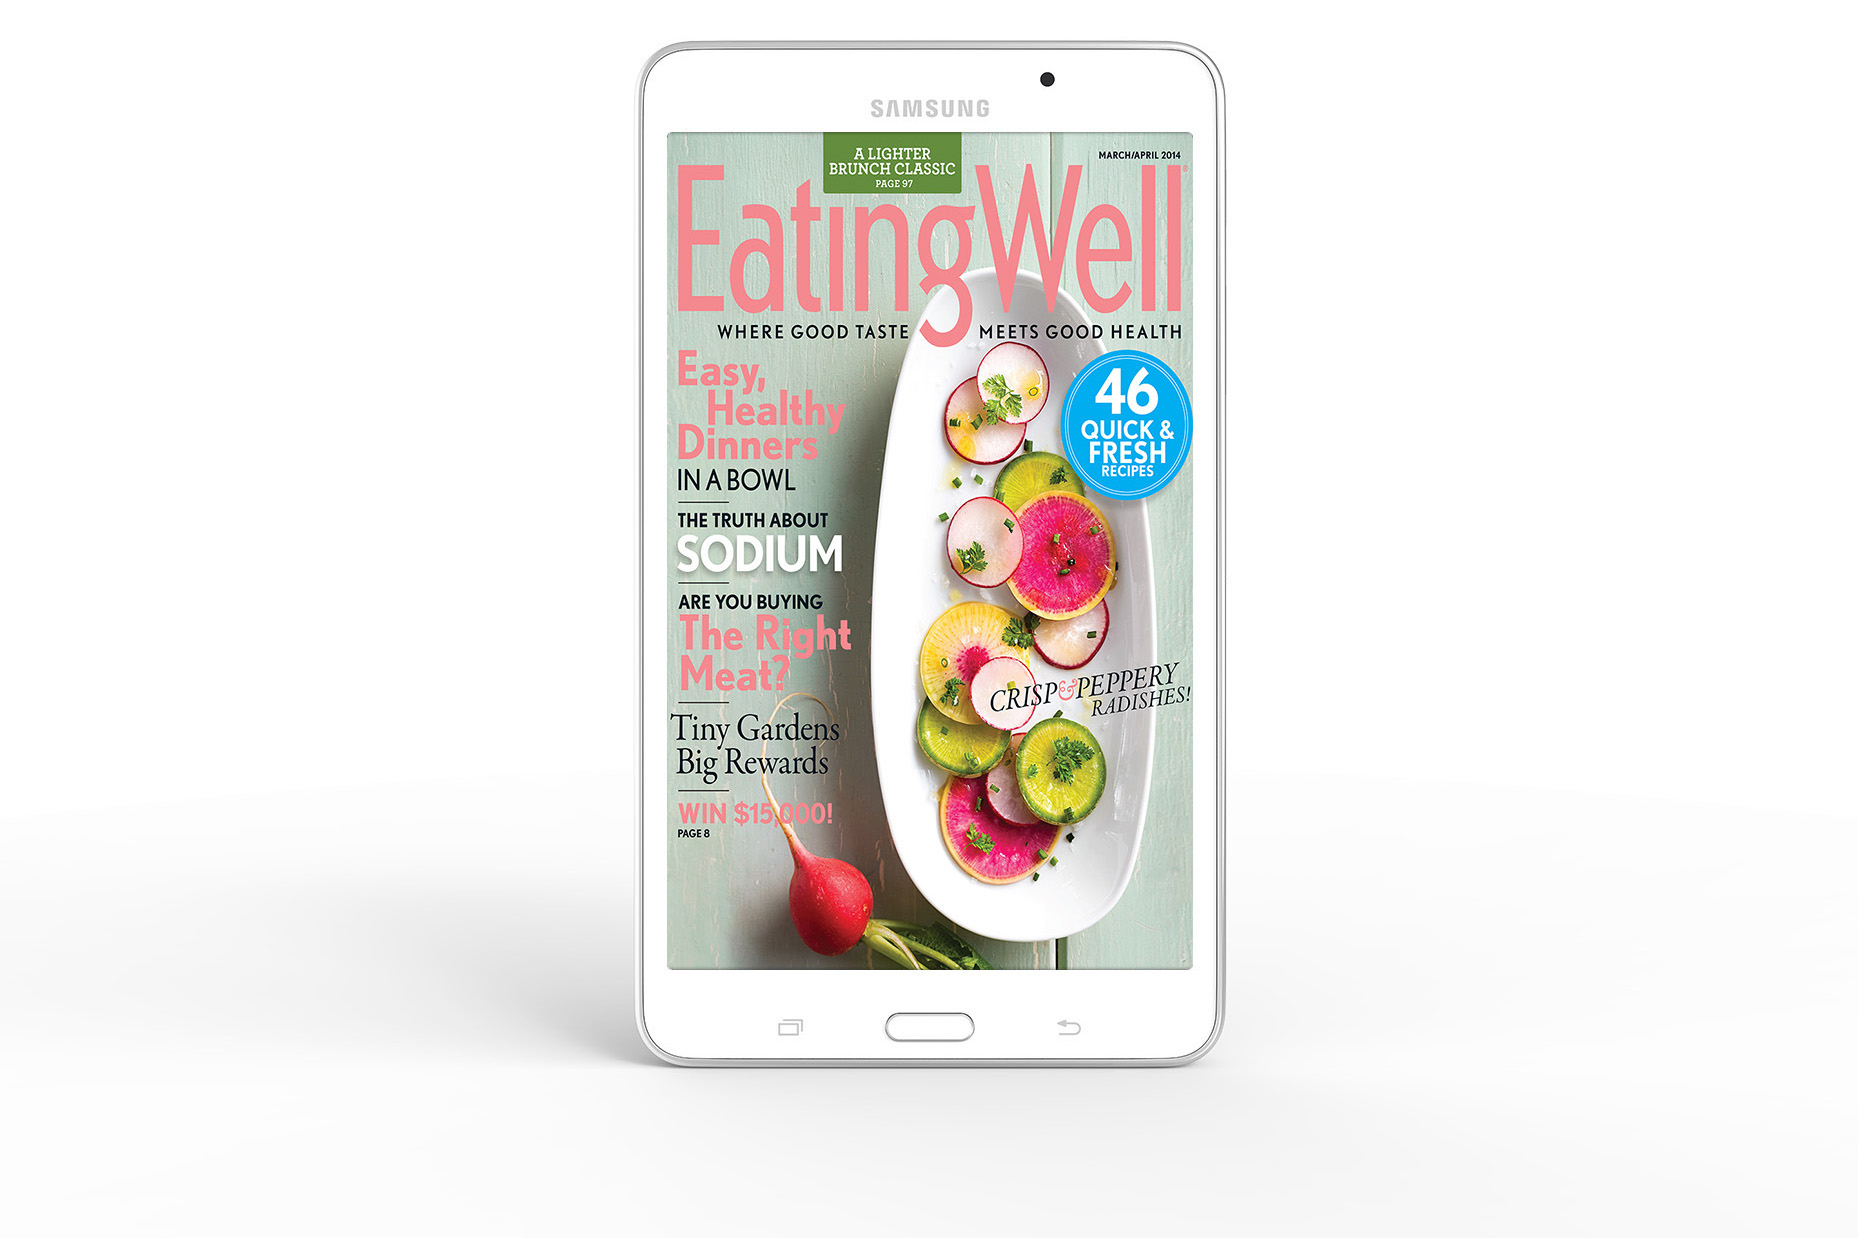 Samsung Galaxy Tab 4 NOOK Released For